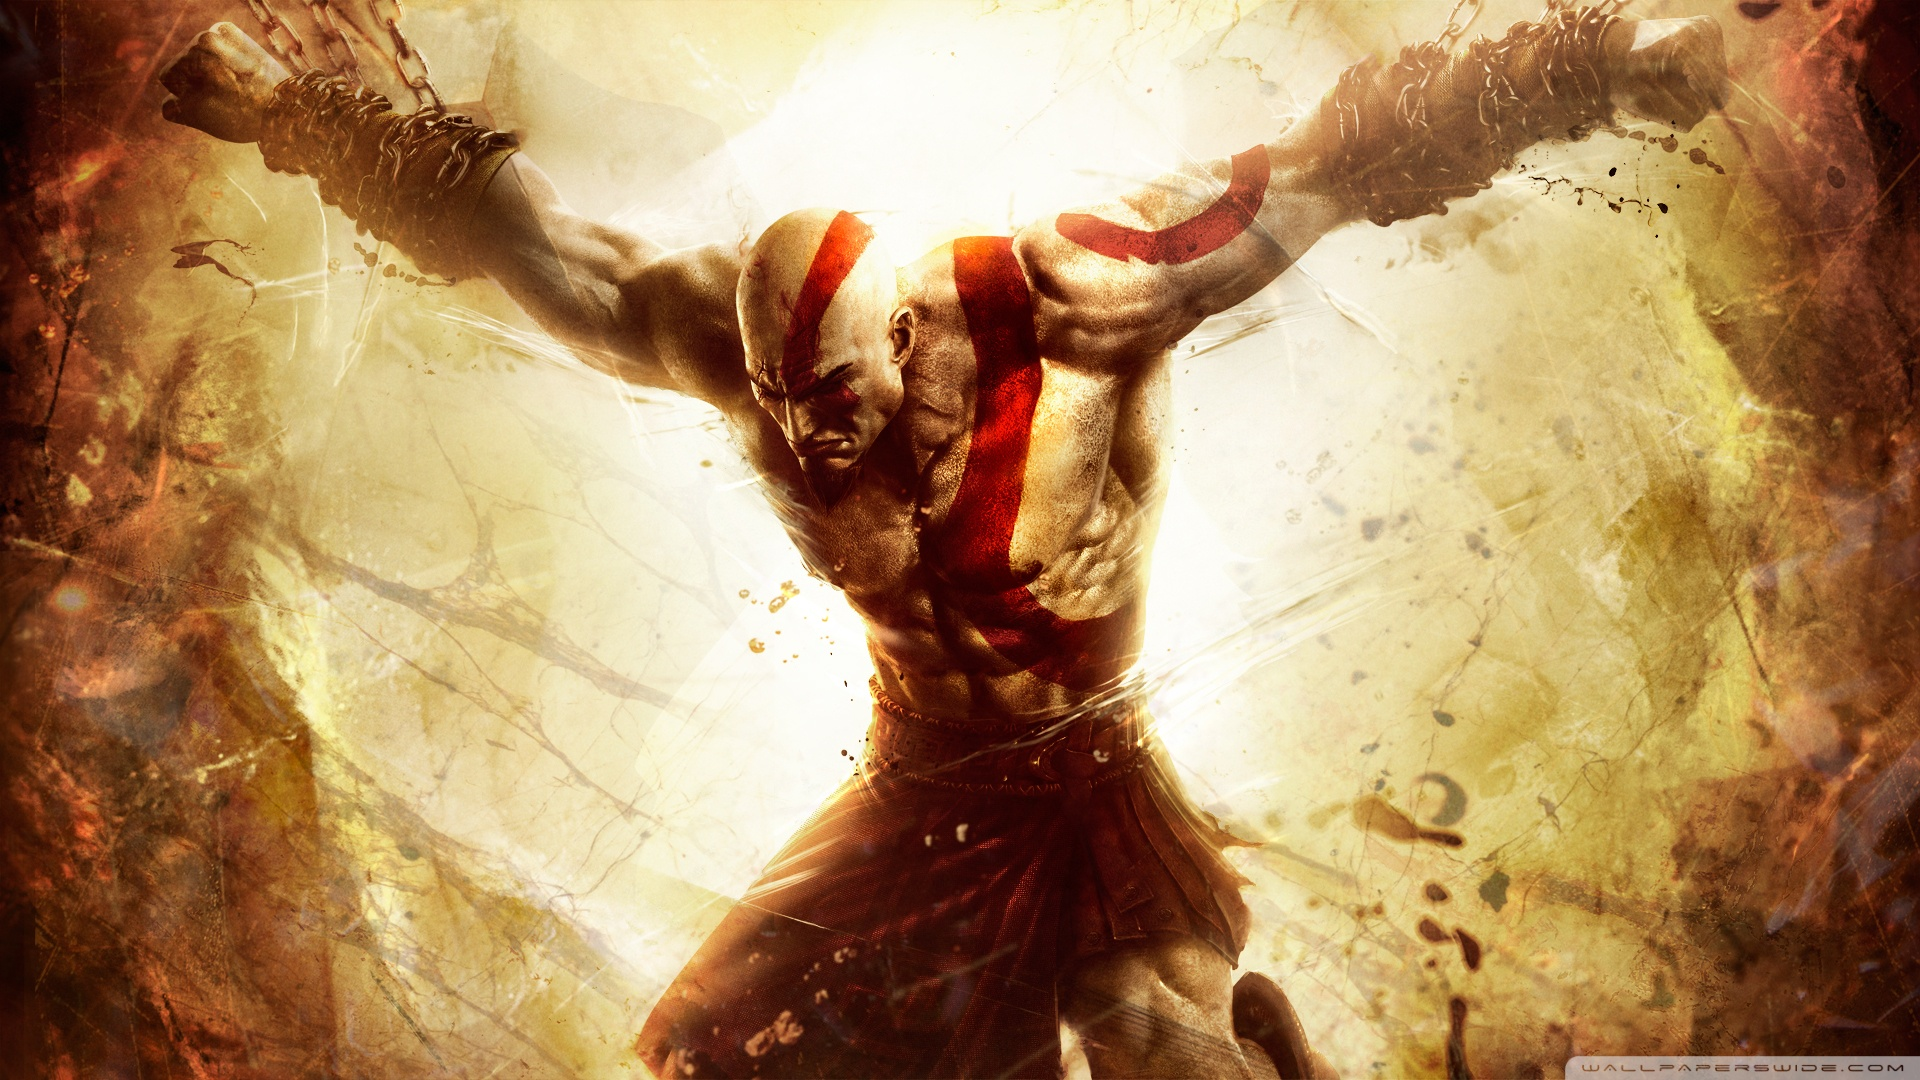 God Of War Wallpaper 1920x1080 78902